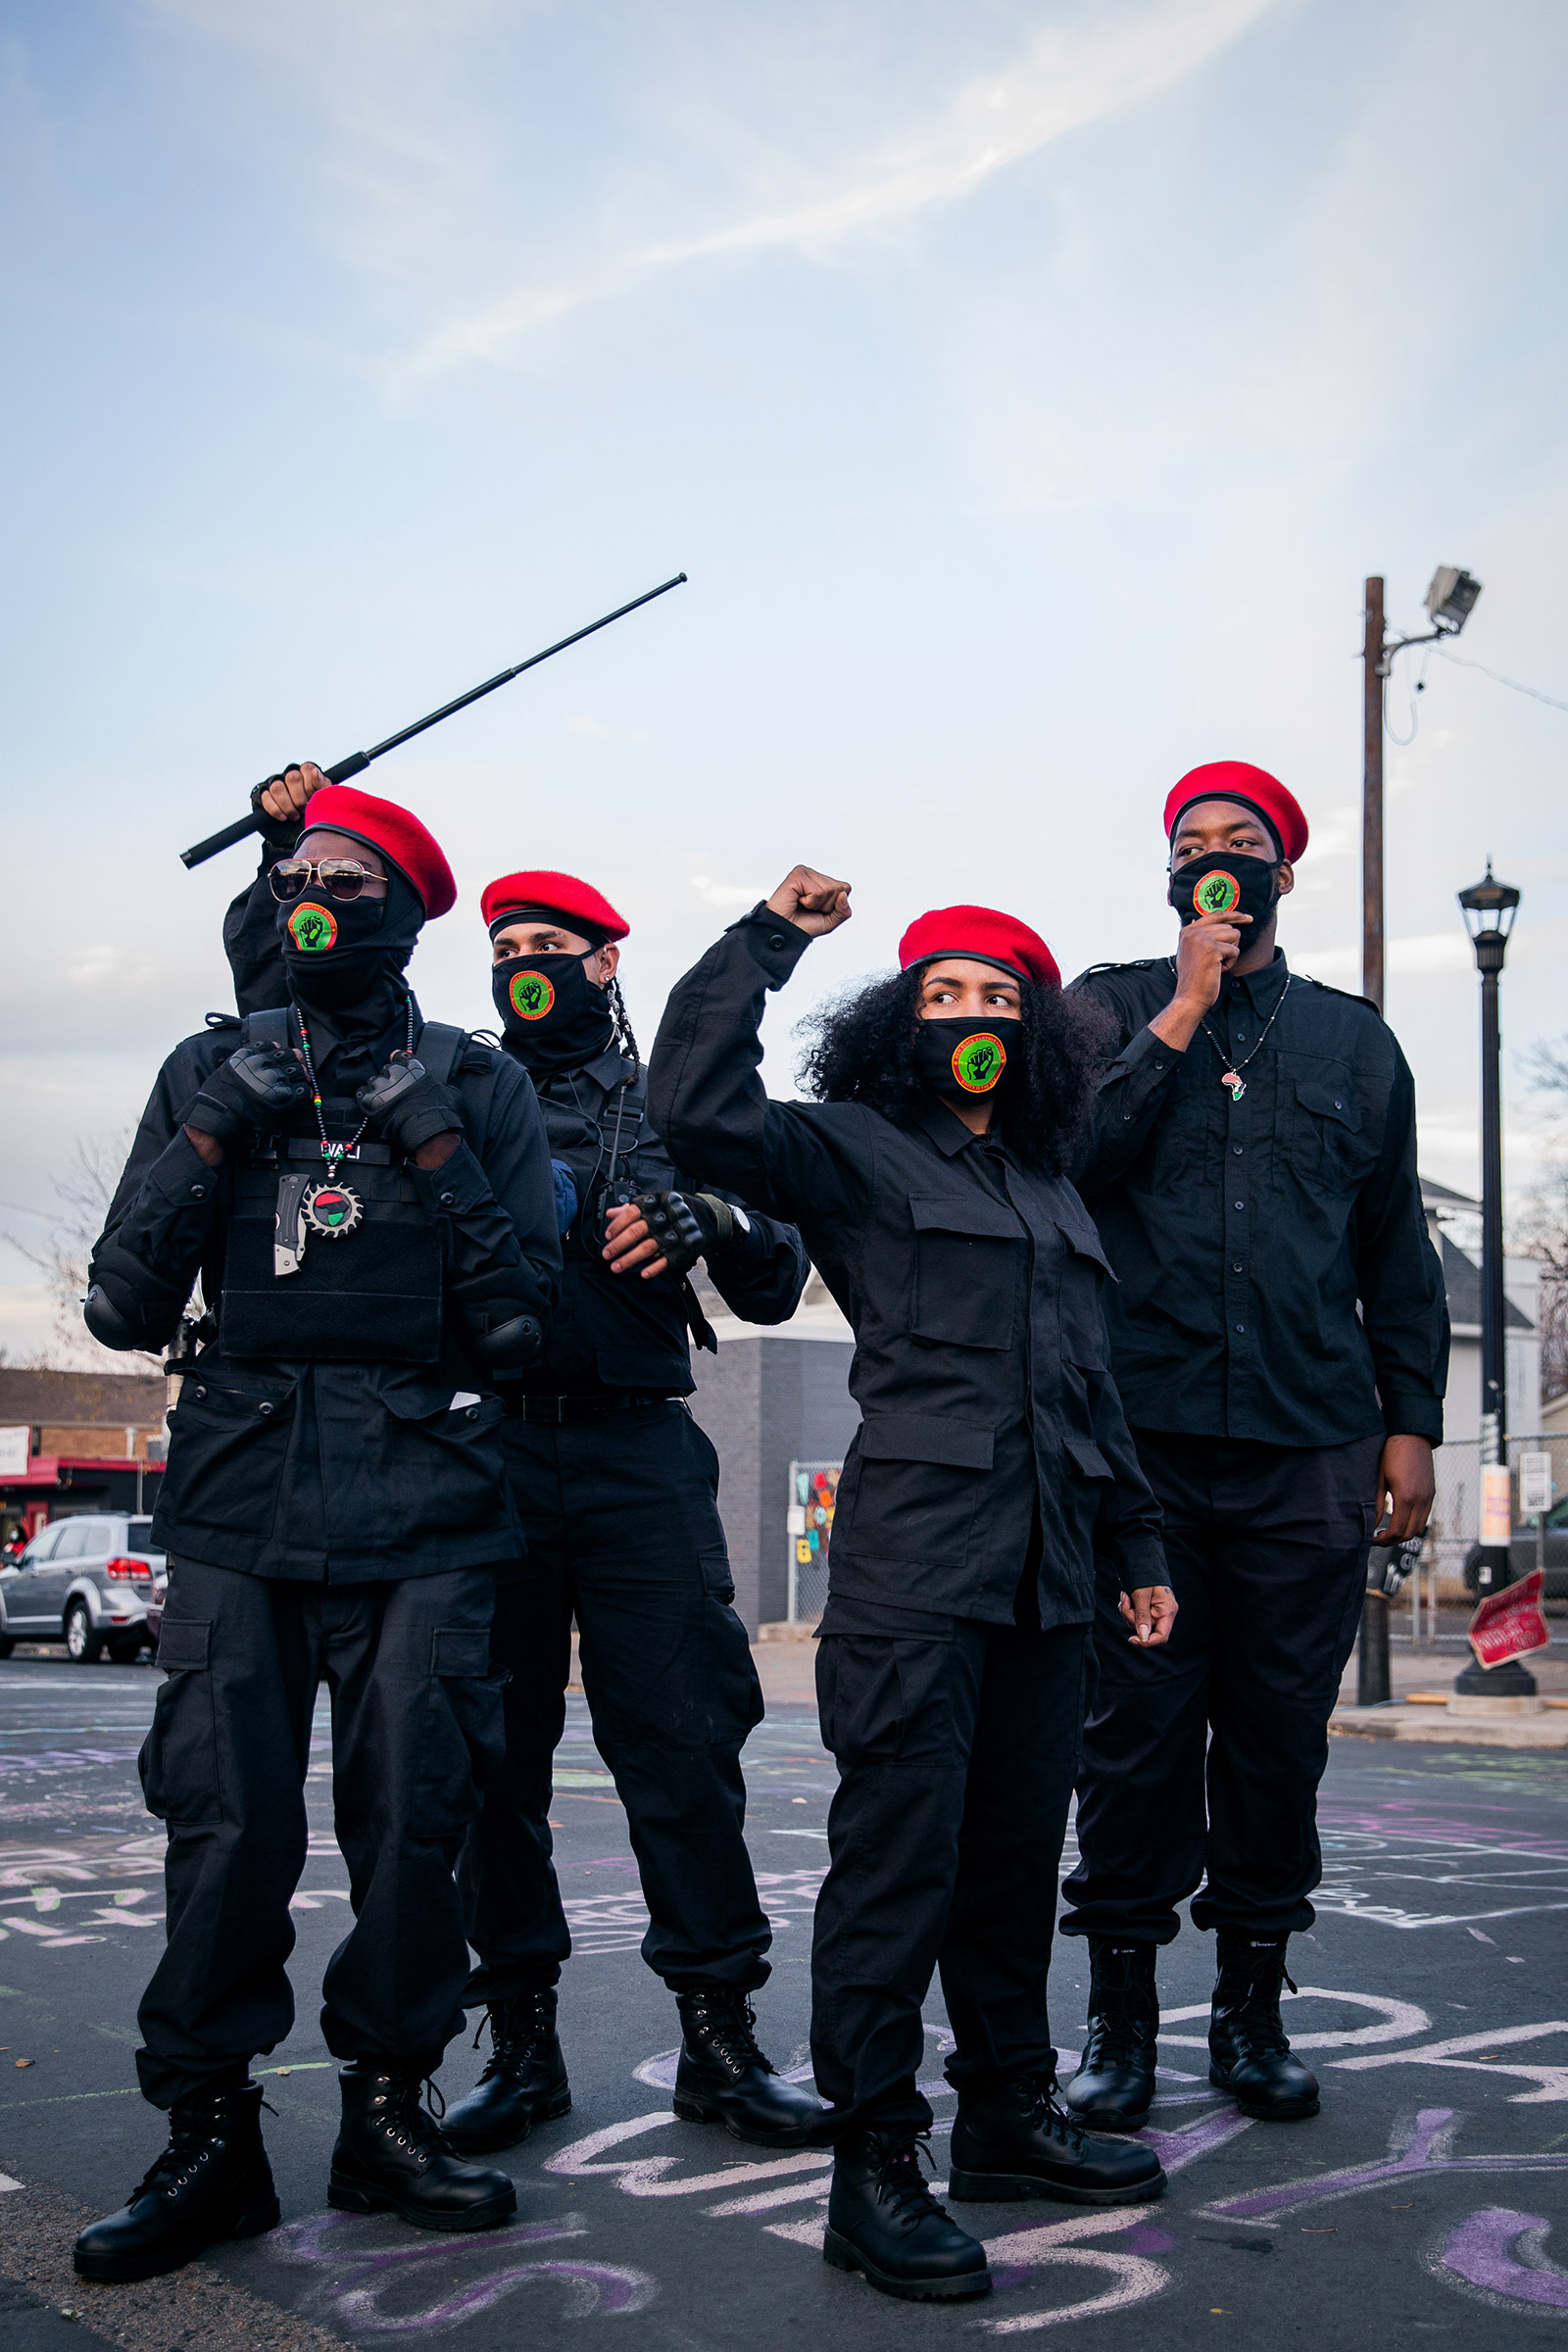 Members of The New Black Panther Party make an appearance at George Floyd Square in South Minneapolis, Nov. 7